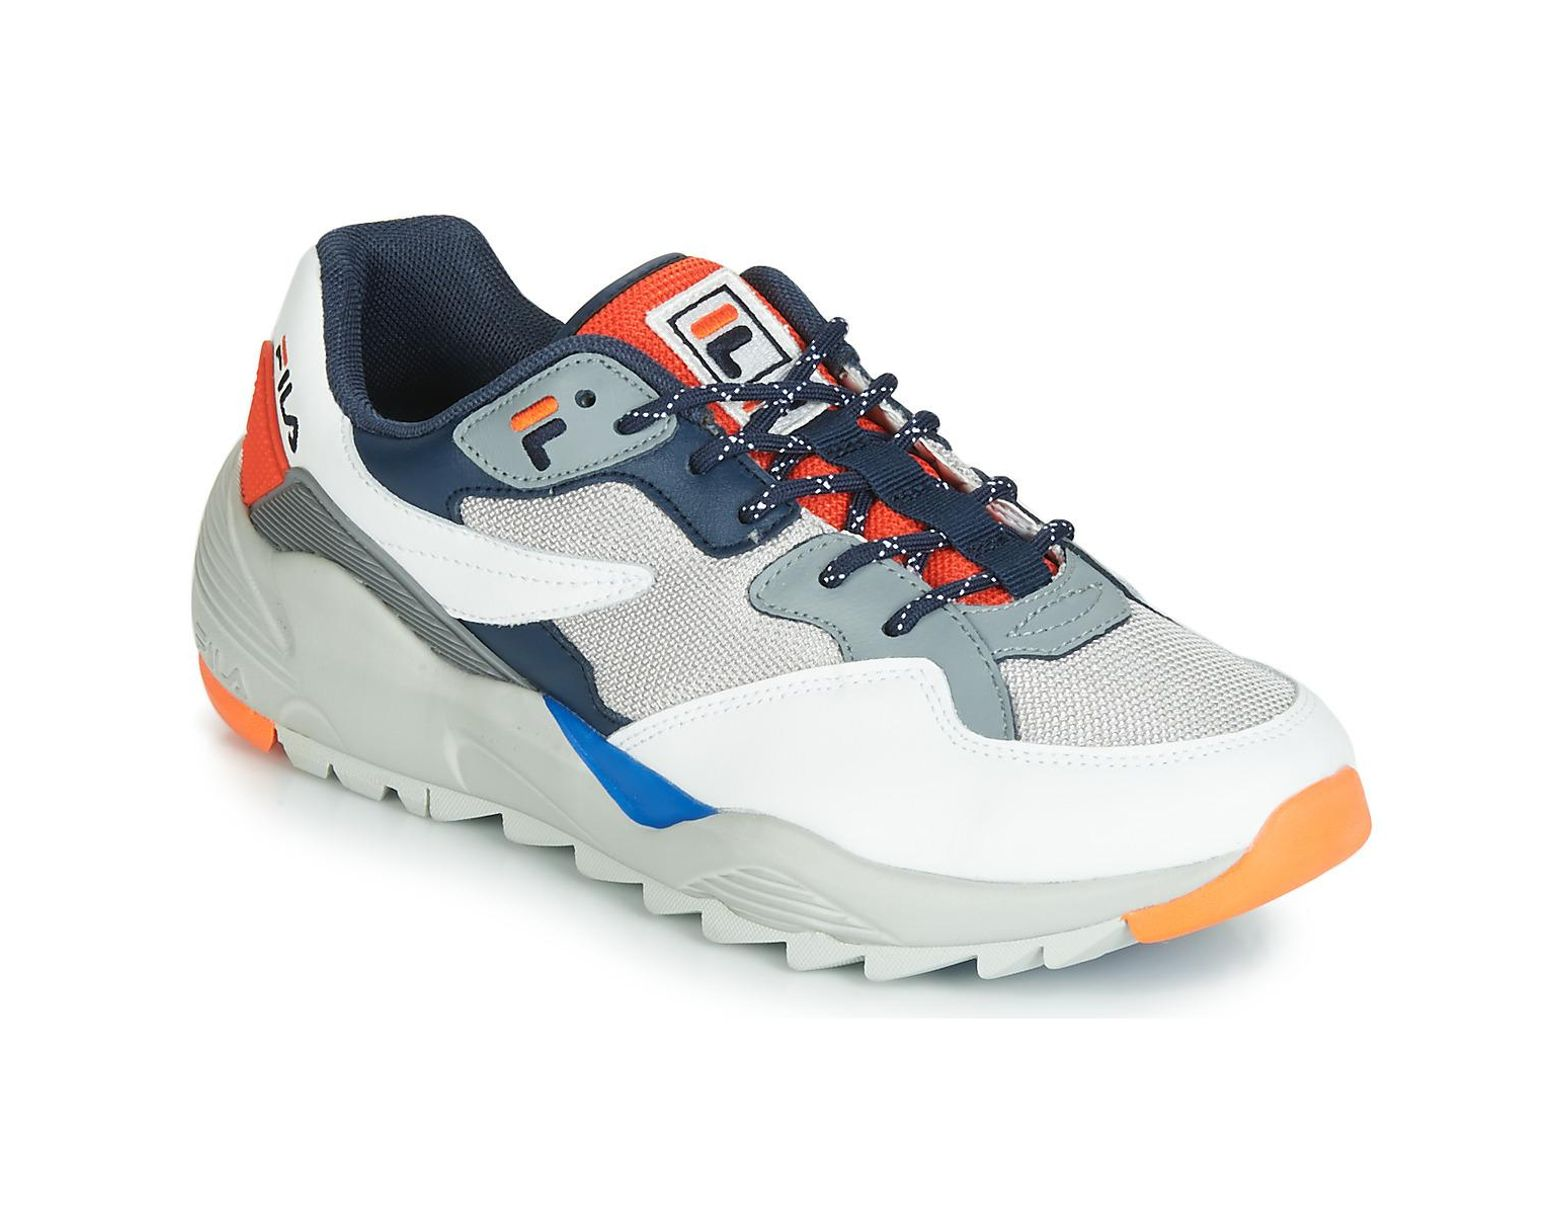 8103dce8bf Fila Vault Cmr JOGGER Cb Low Shoes (trainers) in Gray for Men - Lyst